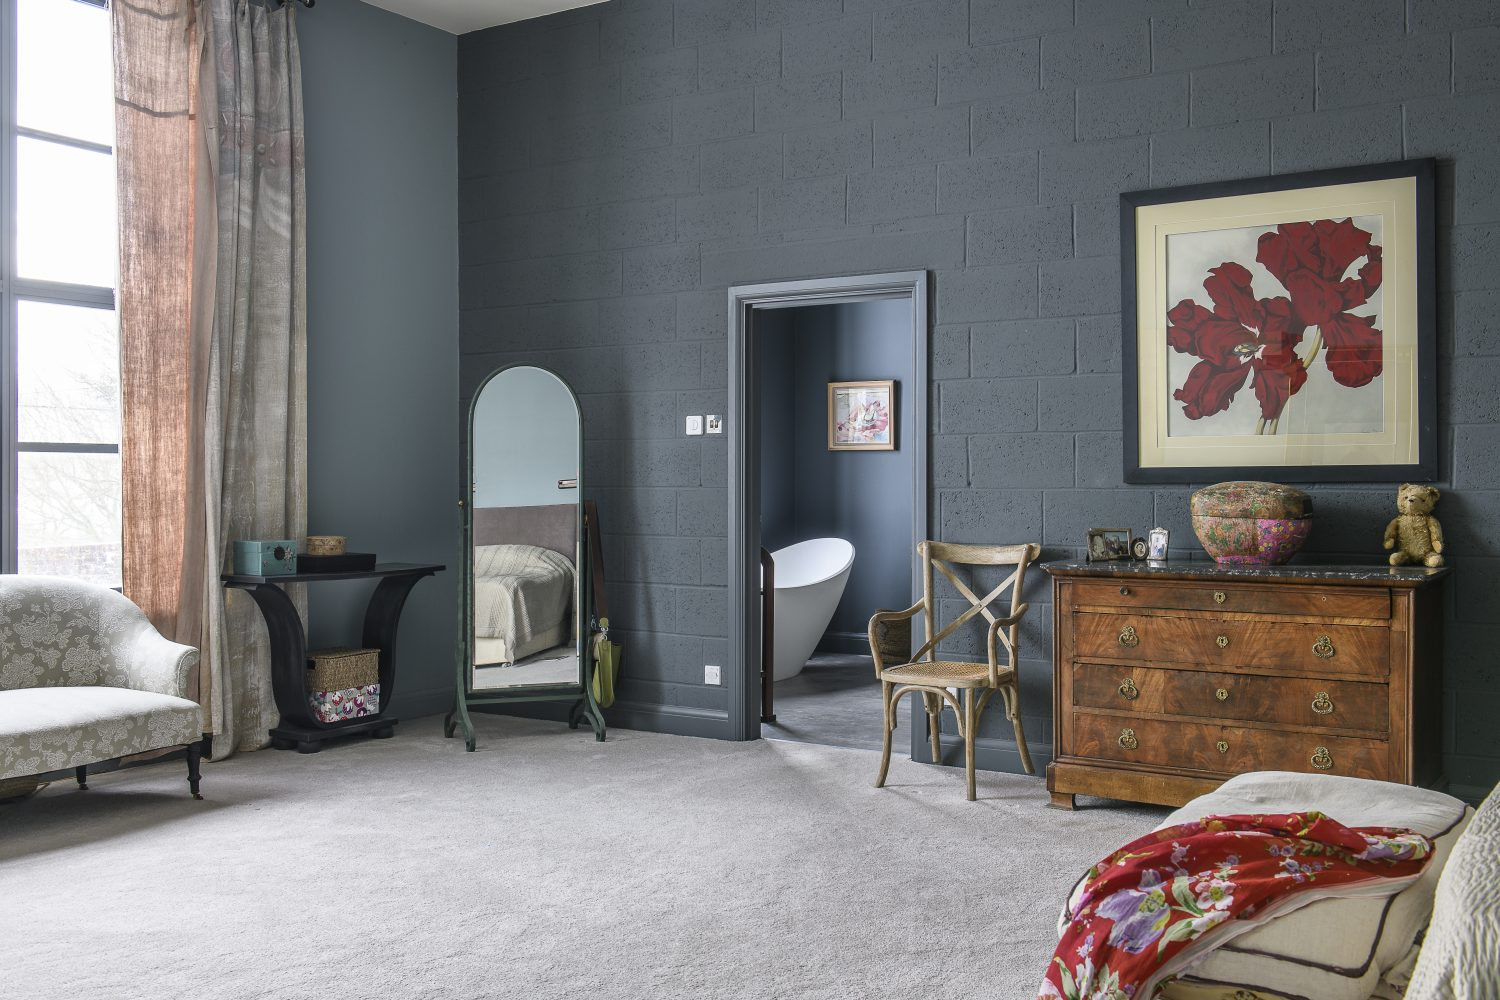 The master bedroom's walls are painted a deep grey – Shetland by Zoffany